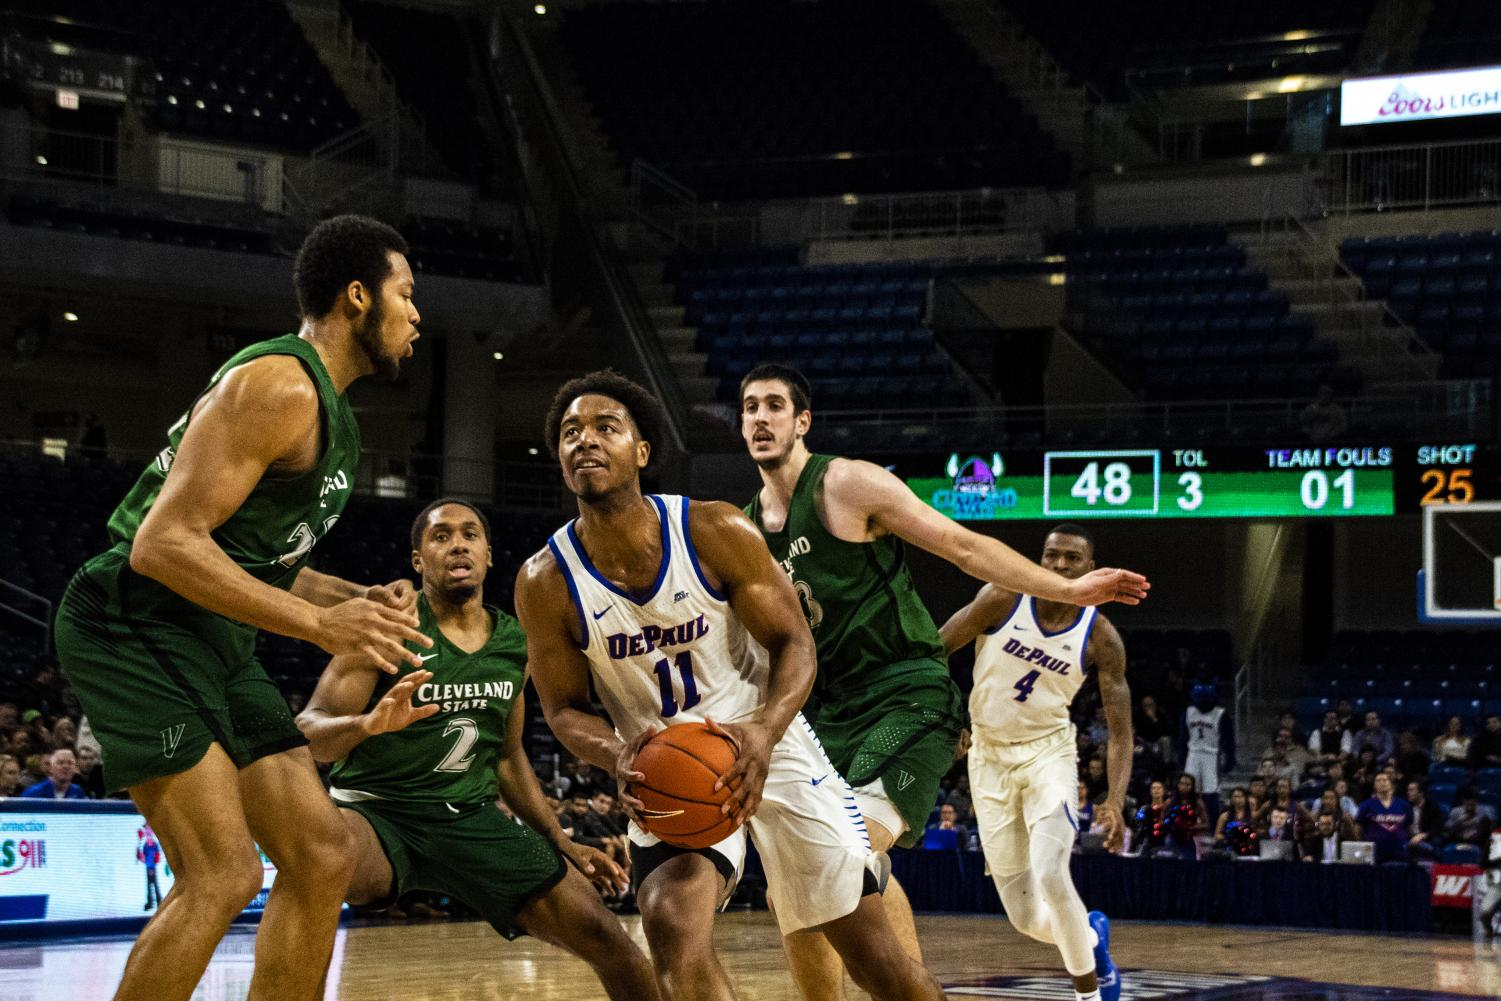 DePaul senior guard Eli Cain drives to the rim with Cleveland State defenders Jaalam Hill (left), Kasheem Thomas (center) and Stefan Kenic (right) looking on. Richard Bodee | The DePaulia